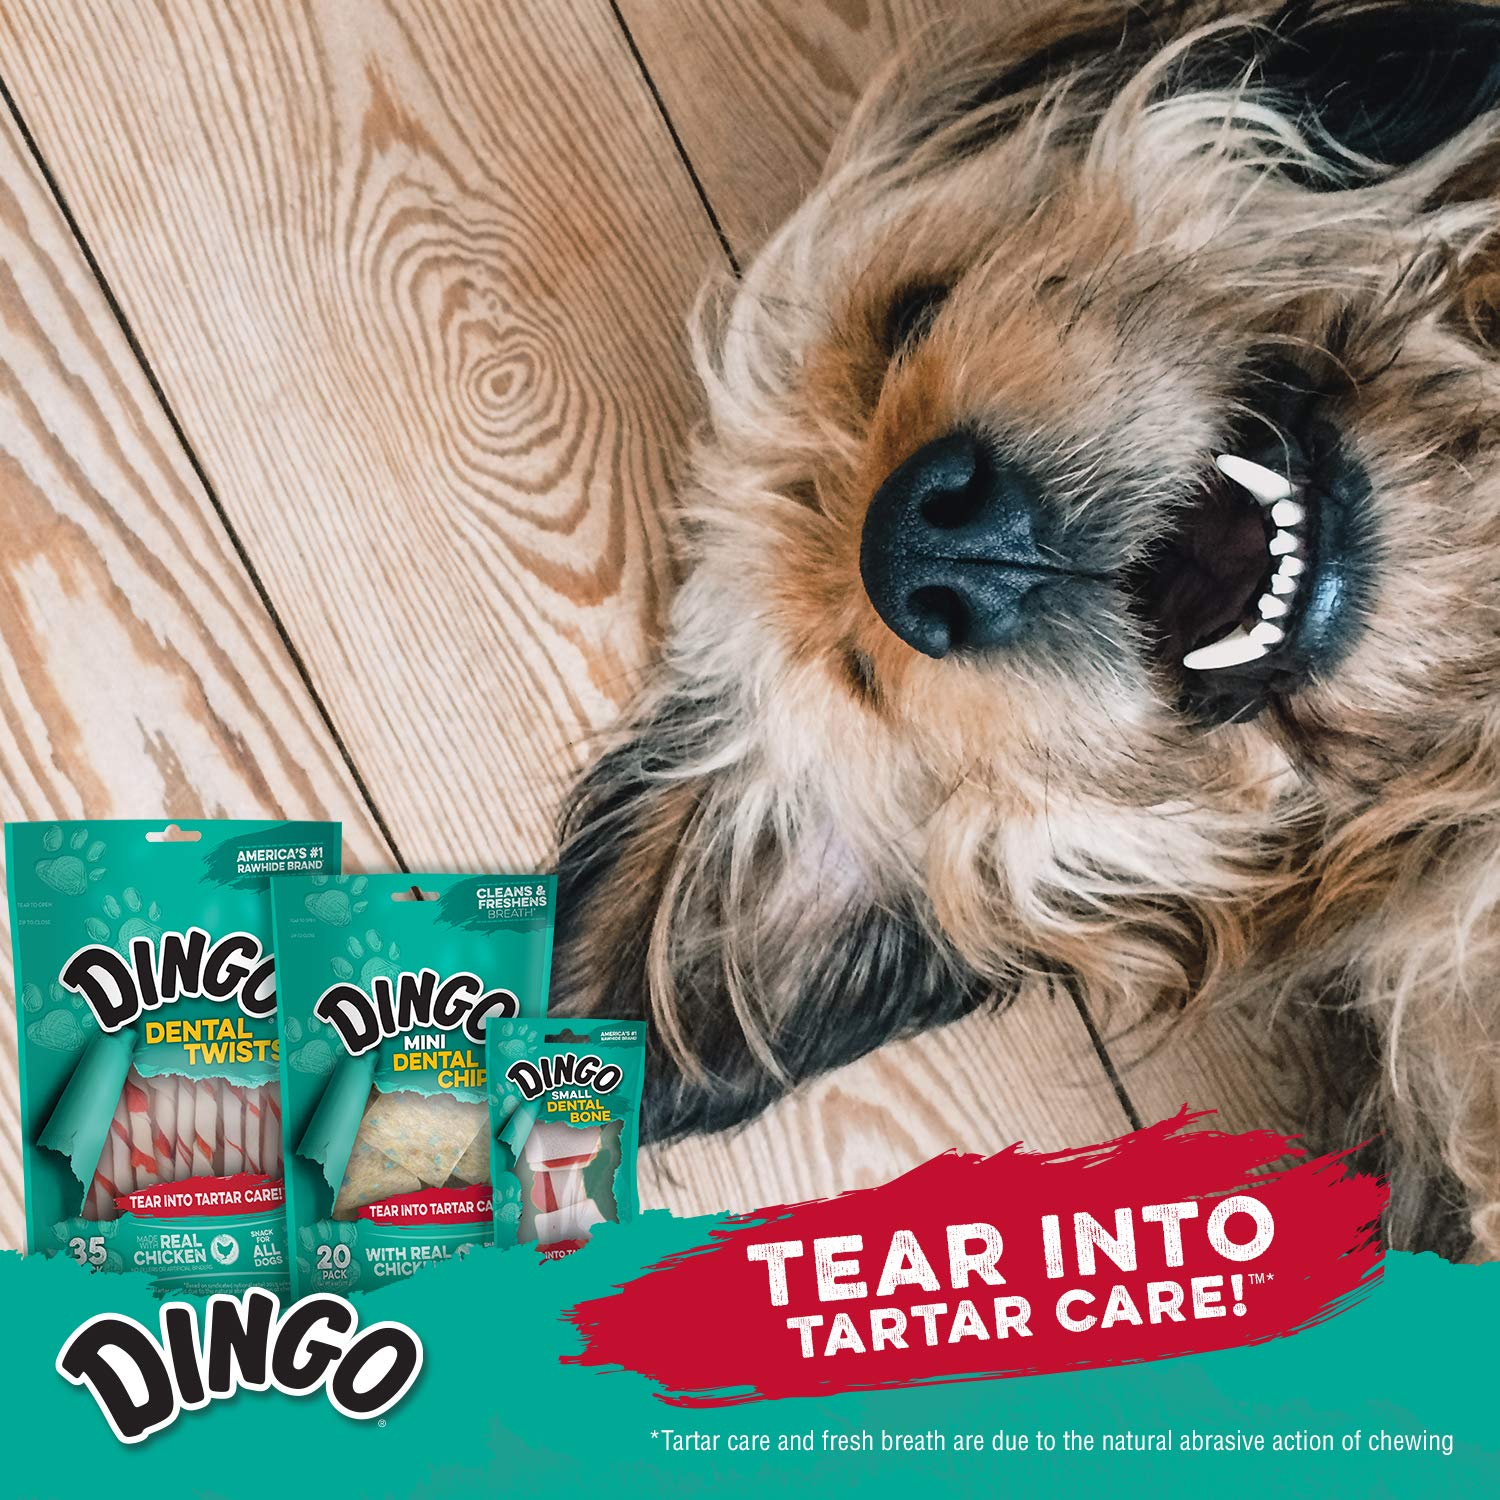 Dingo Tartar And Breath Dental Sticks For All Dogs 48 Count Amazon Lotong L1 Bluetooth Headset Pet Supplies